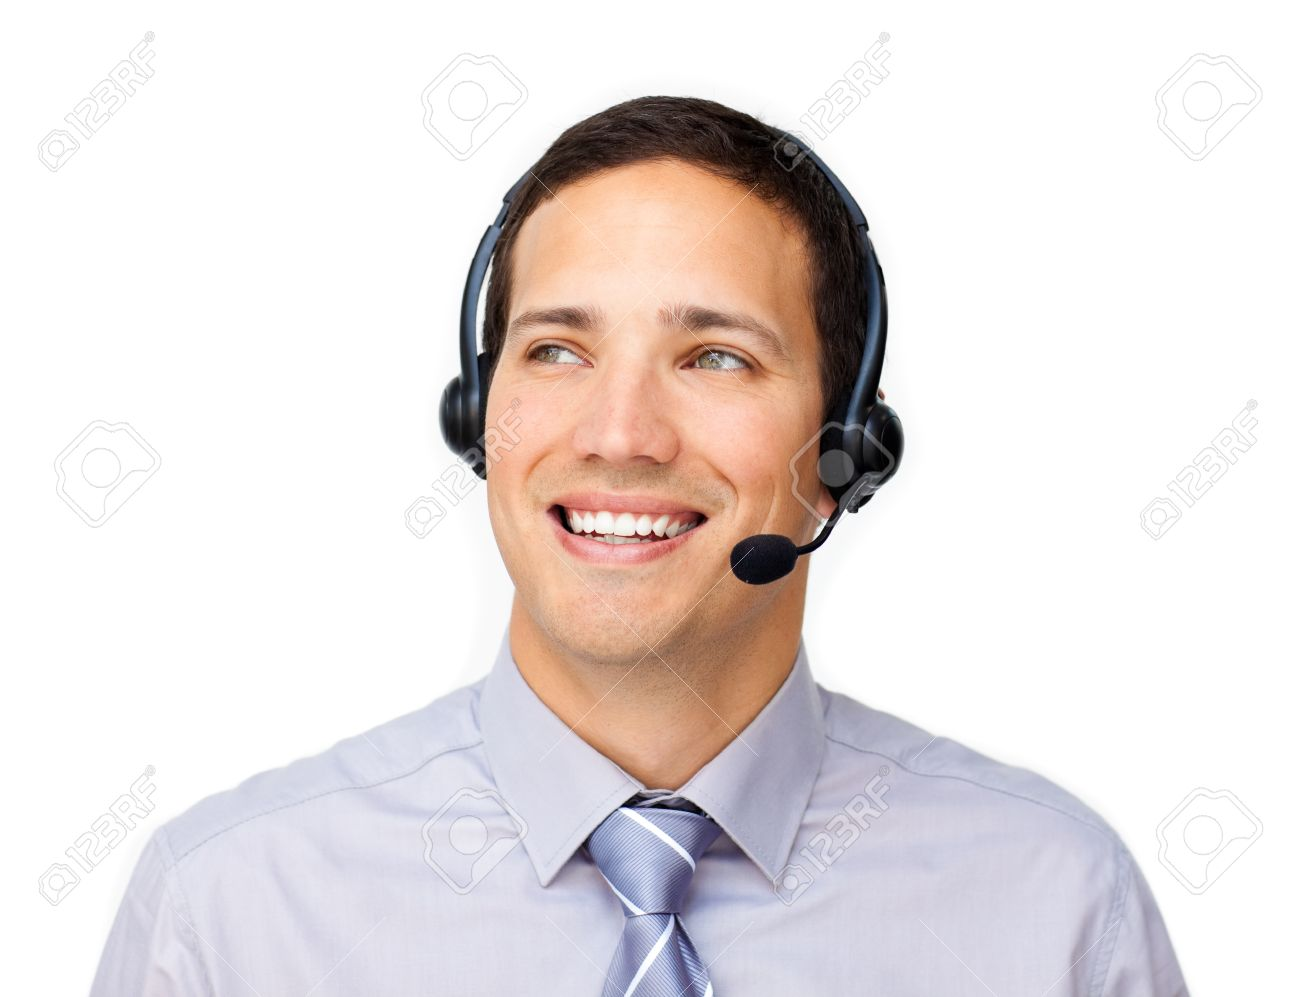 customer service man